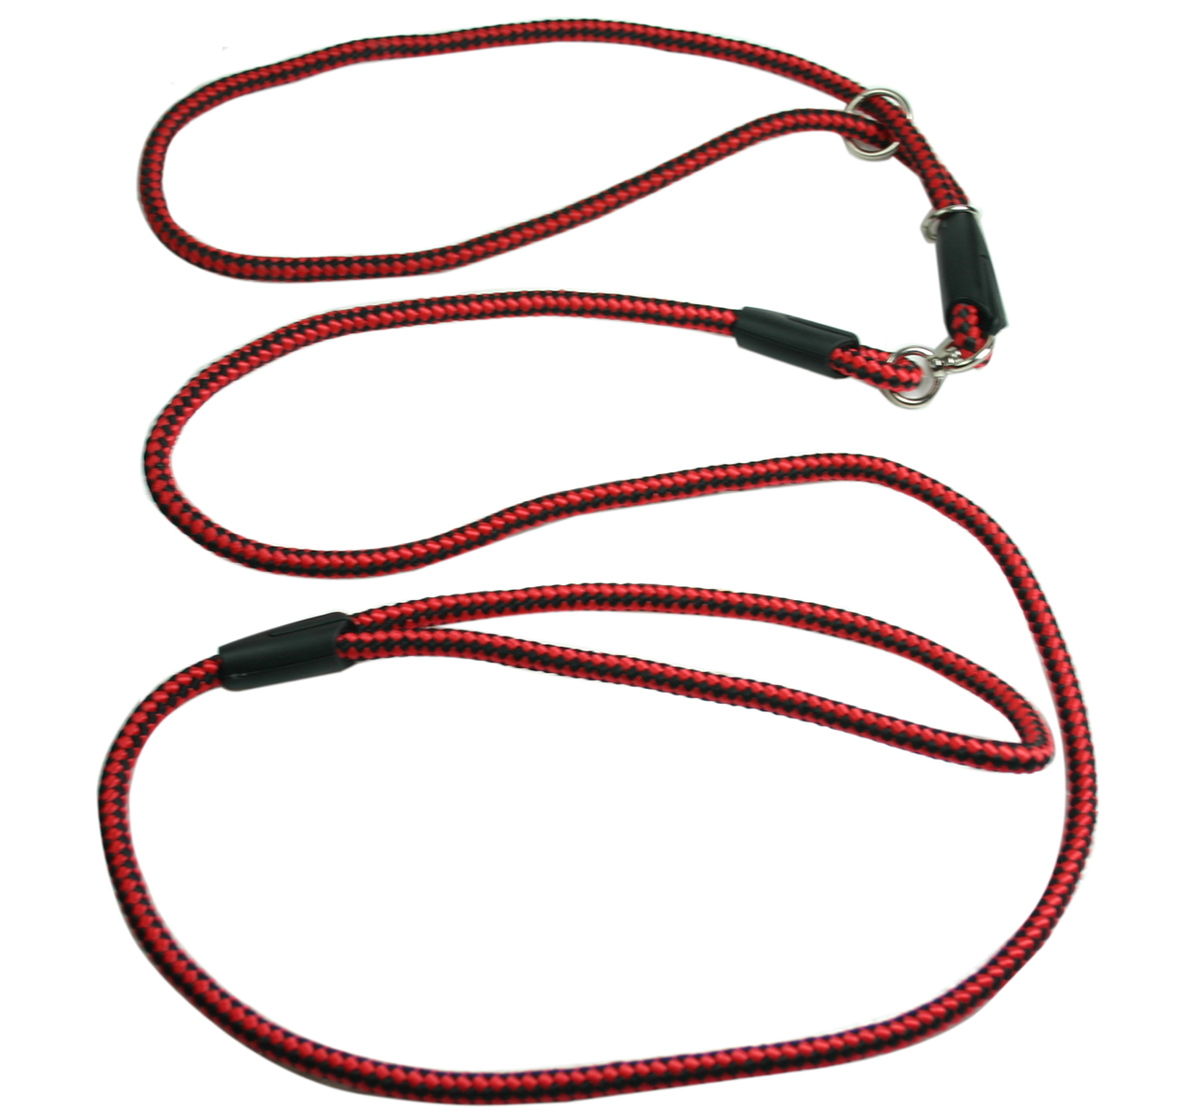 Nylon Dog Show Leash Red for Medium and Large Dogs